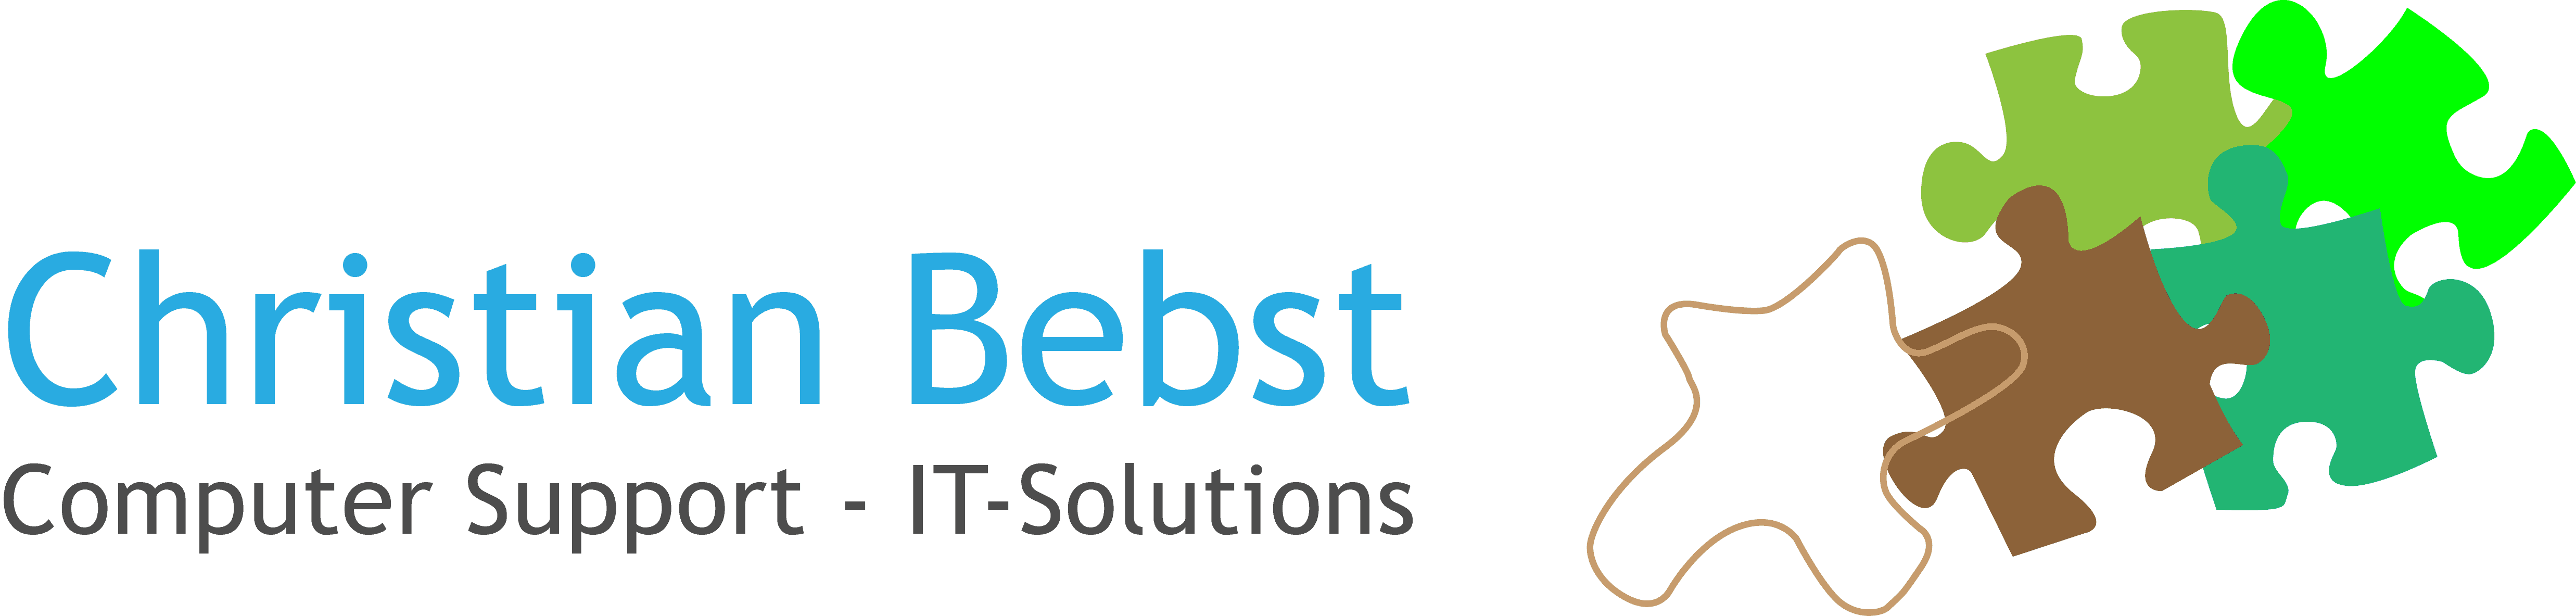 Christian Bebst - Computer Support, IT-Solutions